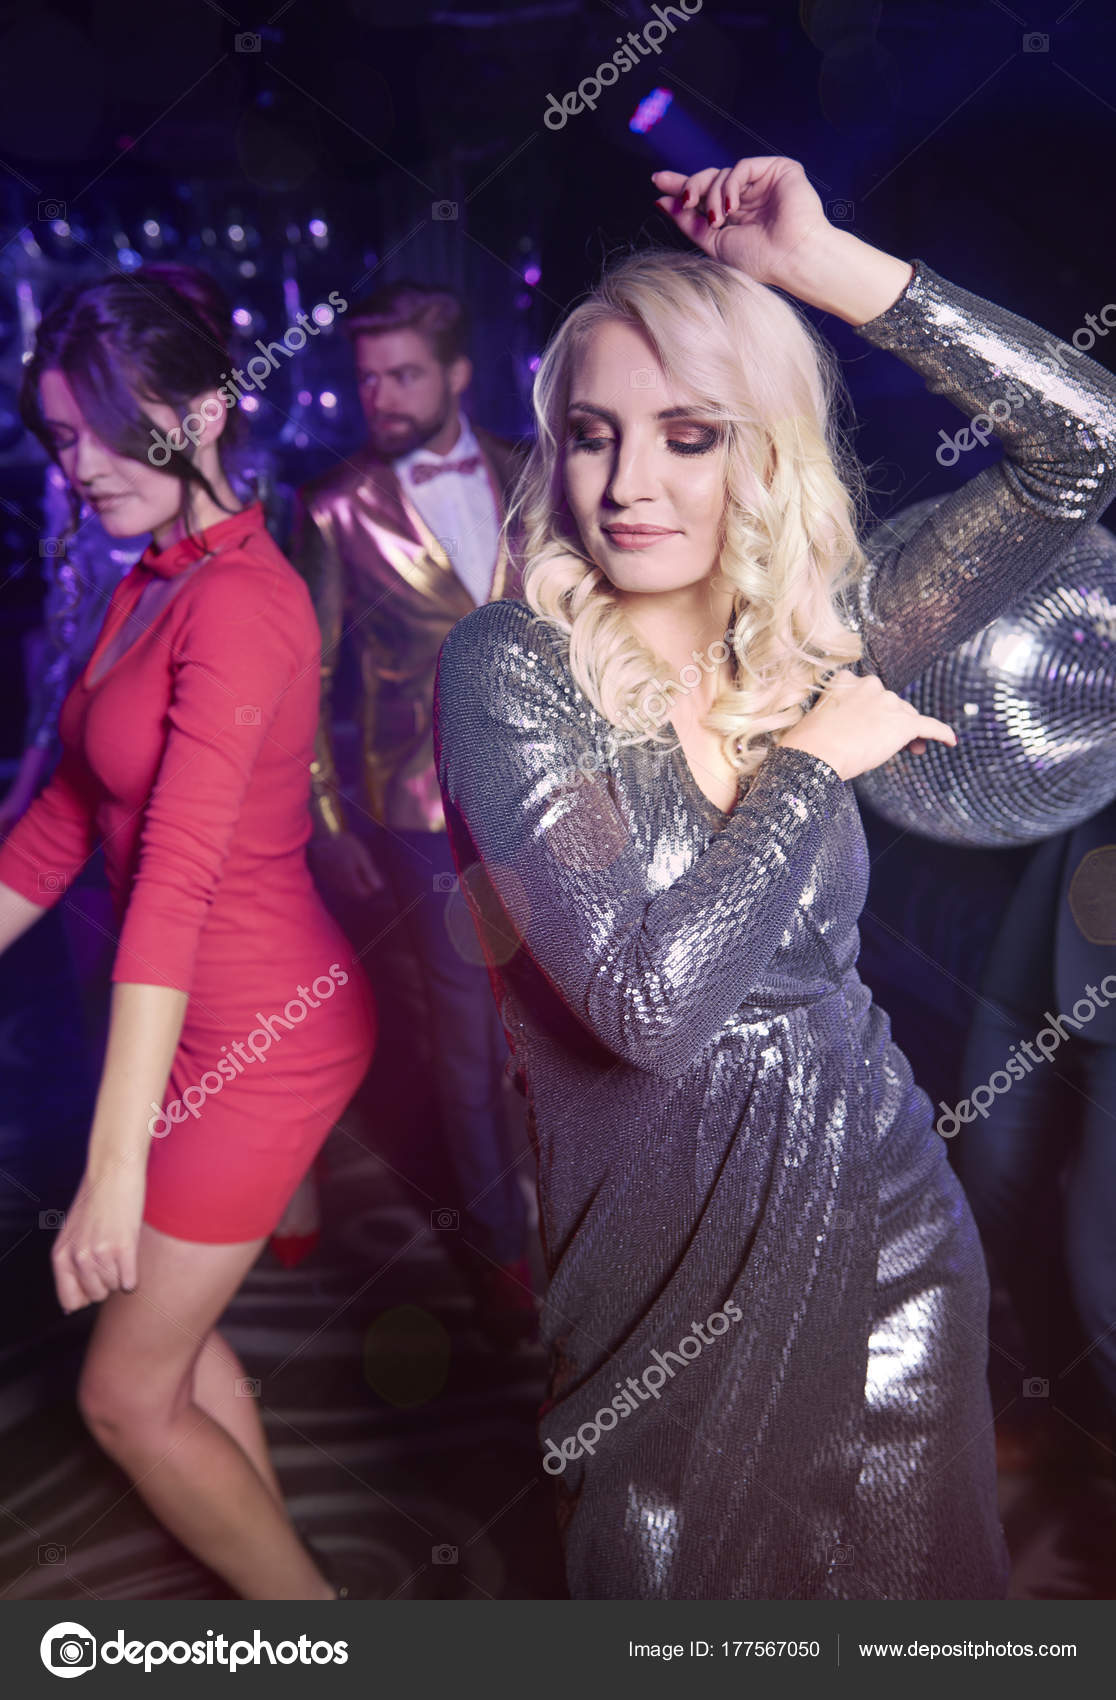 pretty women dancing night club — stock photo © gpointstudio #177567050